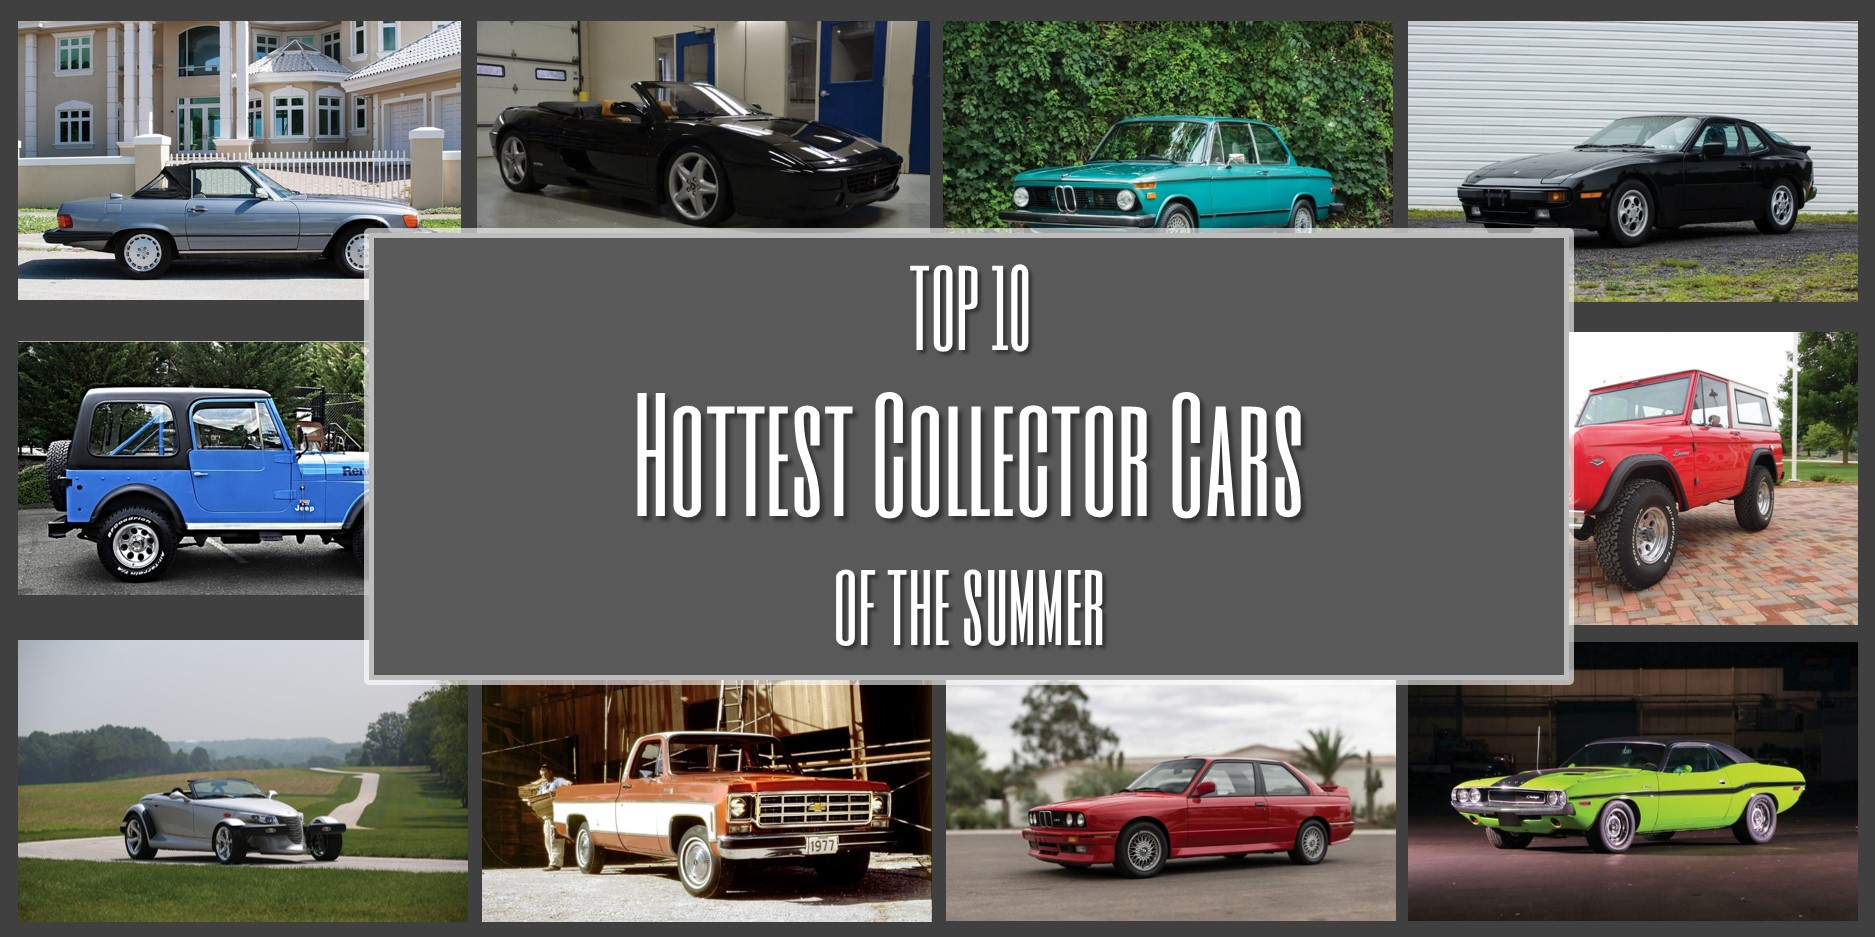 Top 10 Hottest Collector Cars of the Summer